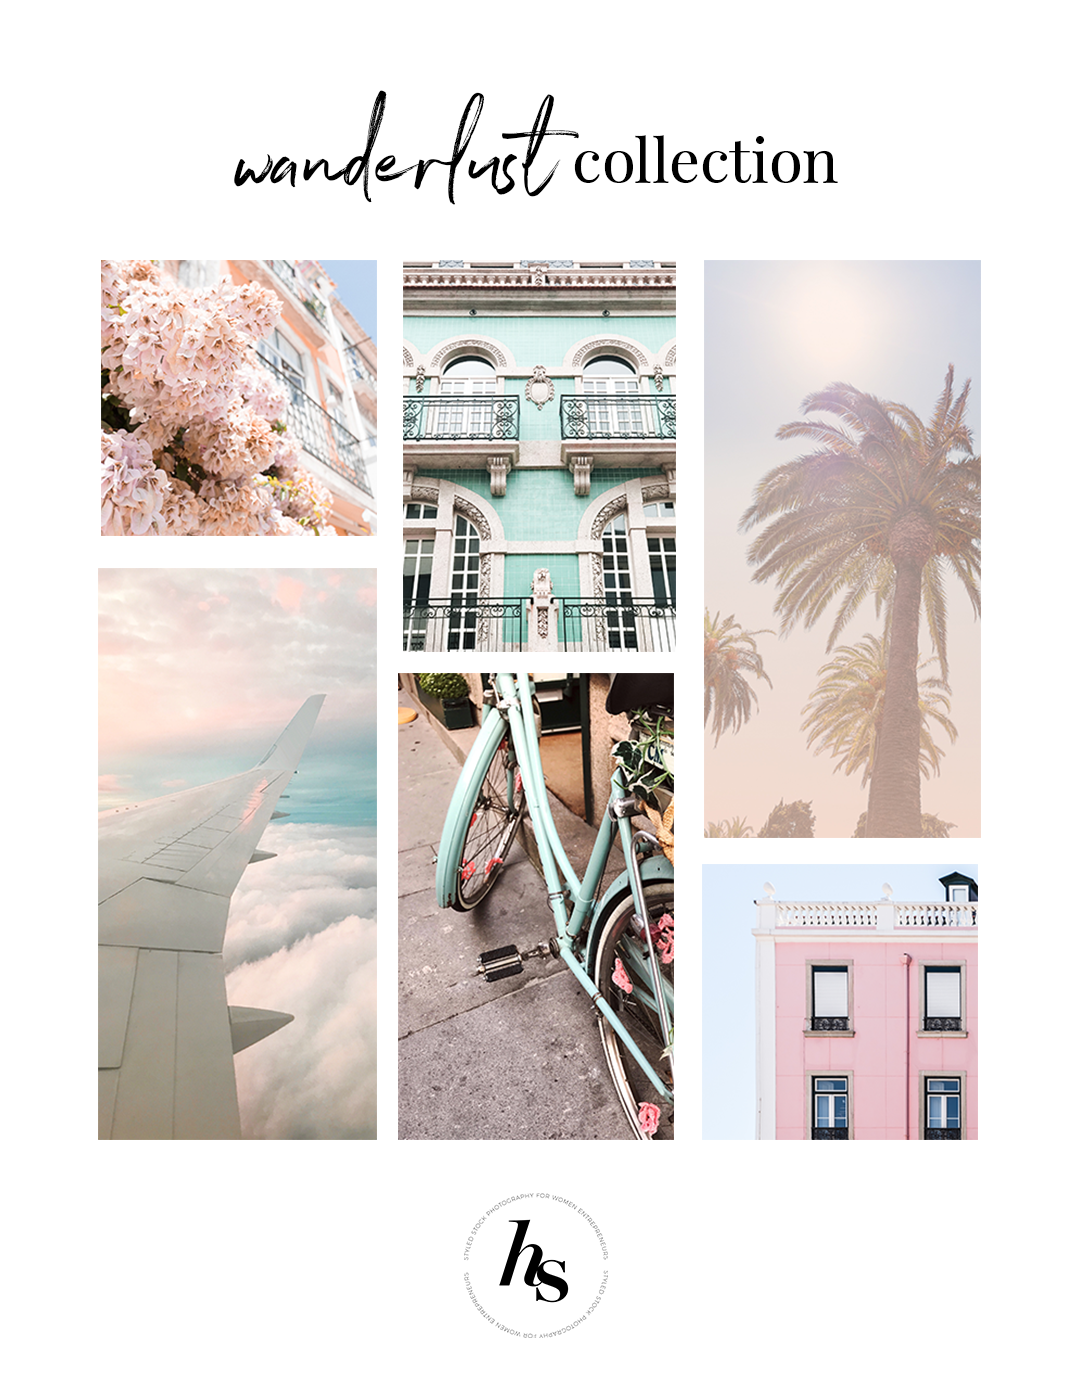 Haute Stock's Wanderlust collection has the perfect dreamy travel inspired stock photos for lifestyle brands. You'll want to see the full preview of the collection here!